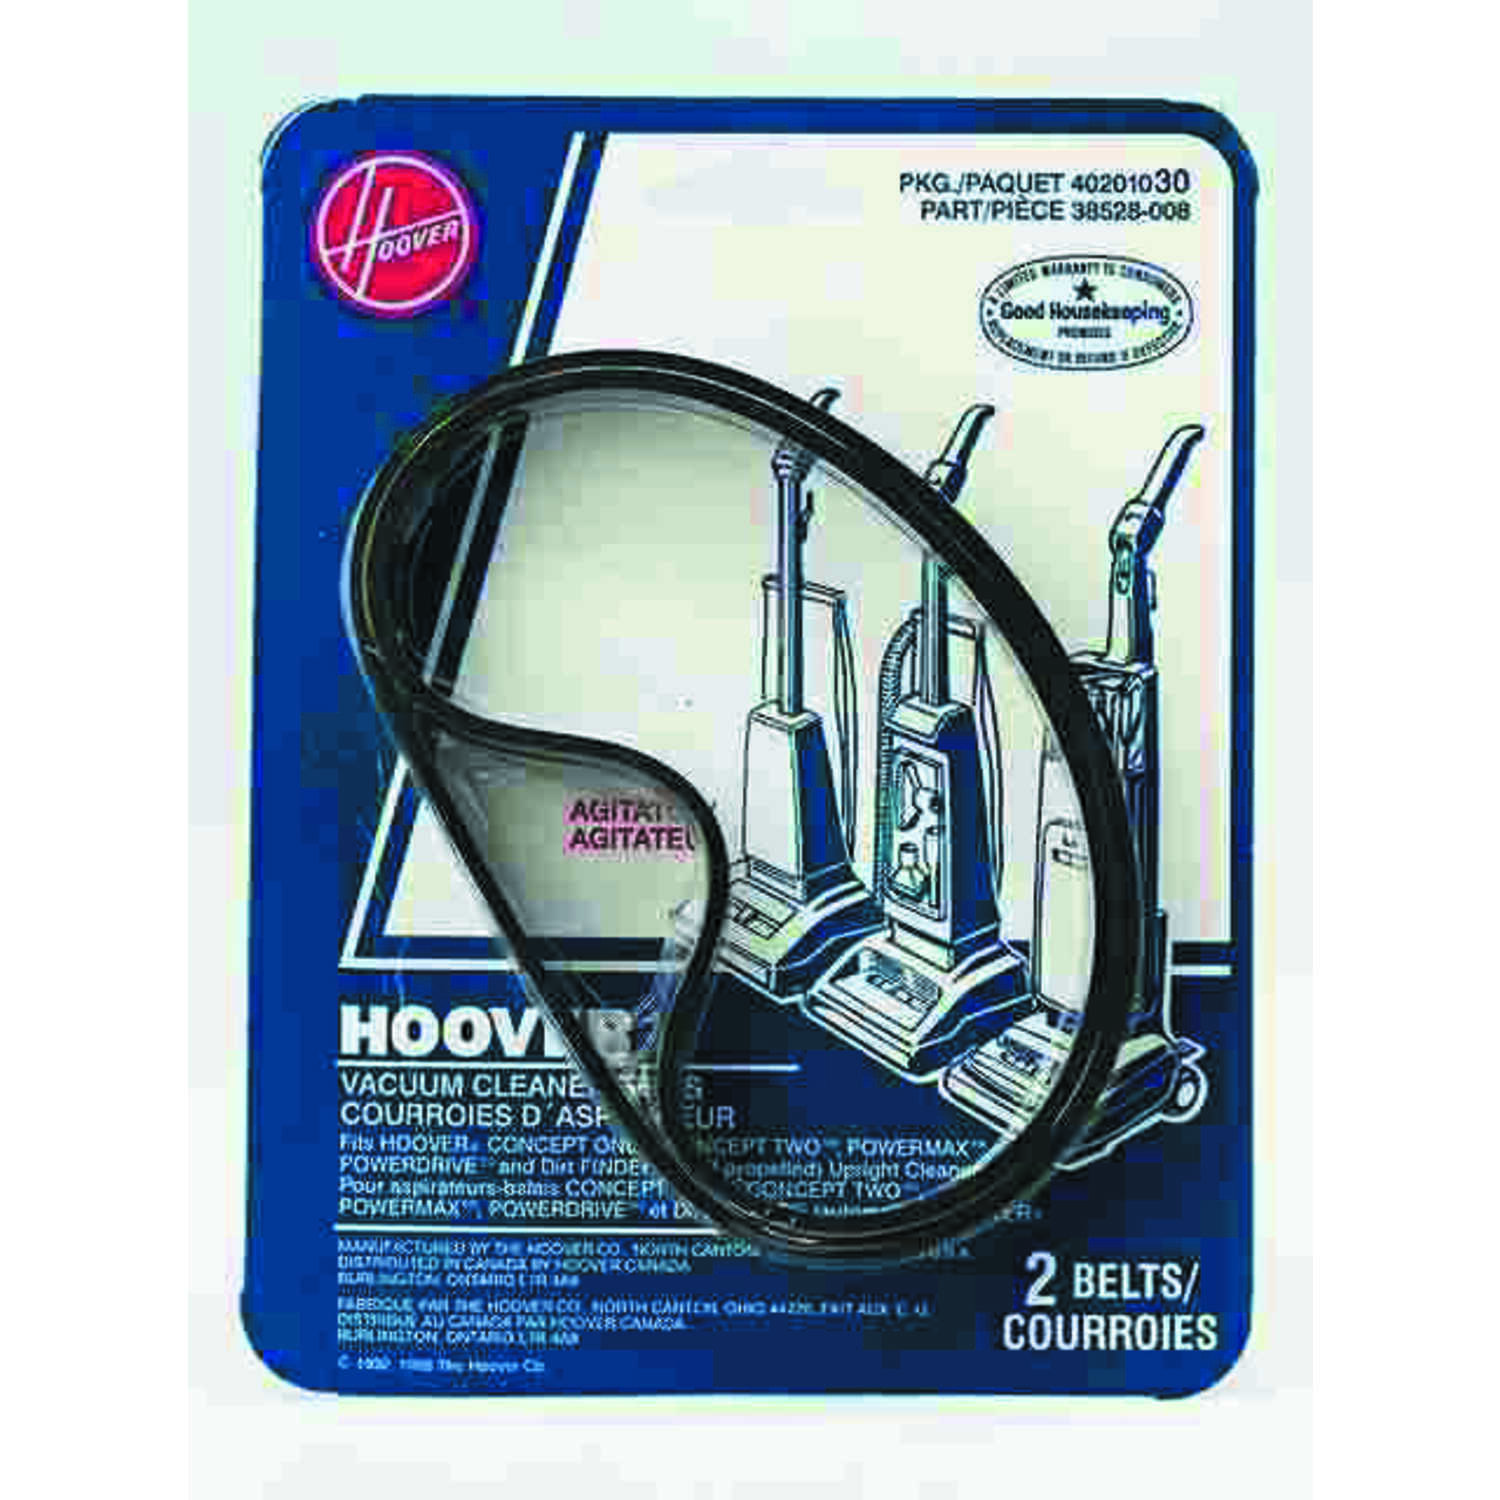 Hoover Concept One Vacuum Belt Fits all Concept One , Two and Power Max uprights Peggable Polybag 2